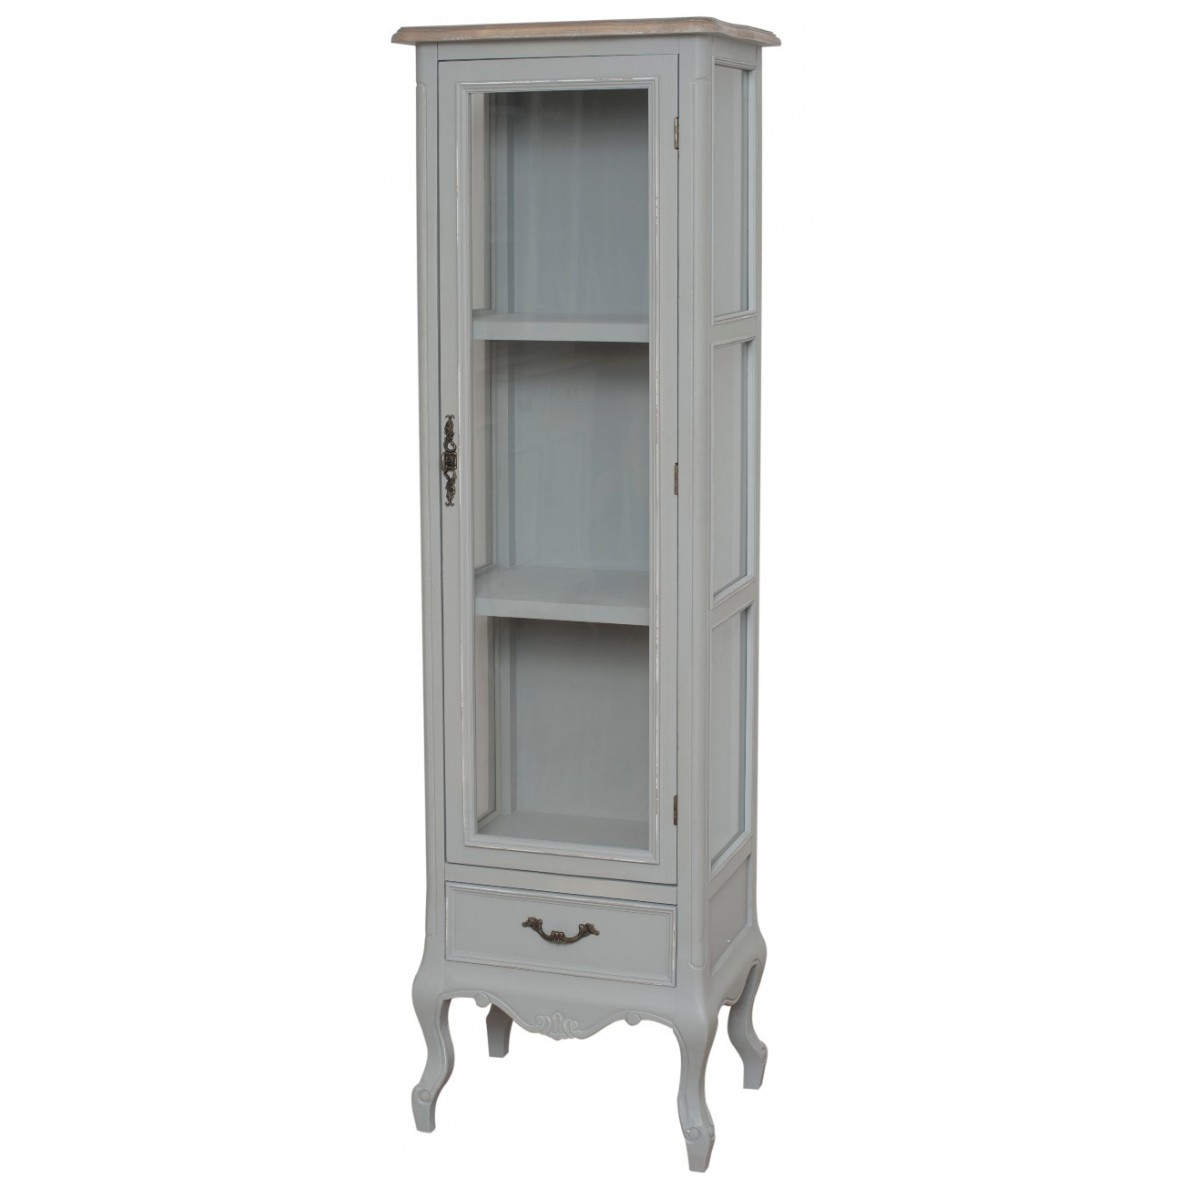 Vitrina din lemn de plop si MDF, cu 1 sertar si 1 usa Catania CAT05 Light Grey, l48xA35xH160 cm imagine